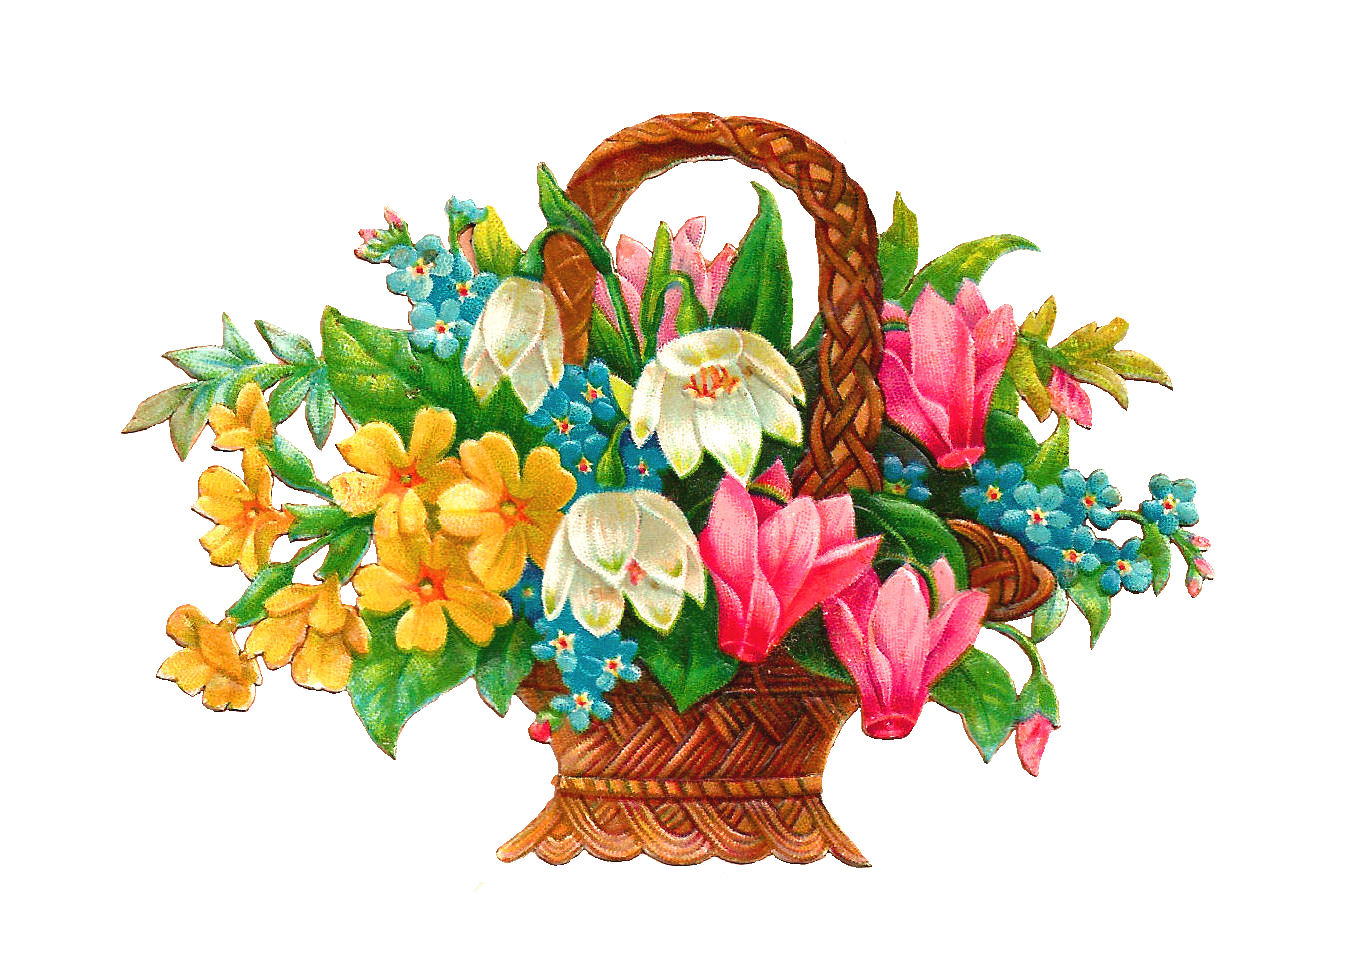 Images Of Flower Baskets : Antique images free flower basket clip art wicket